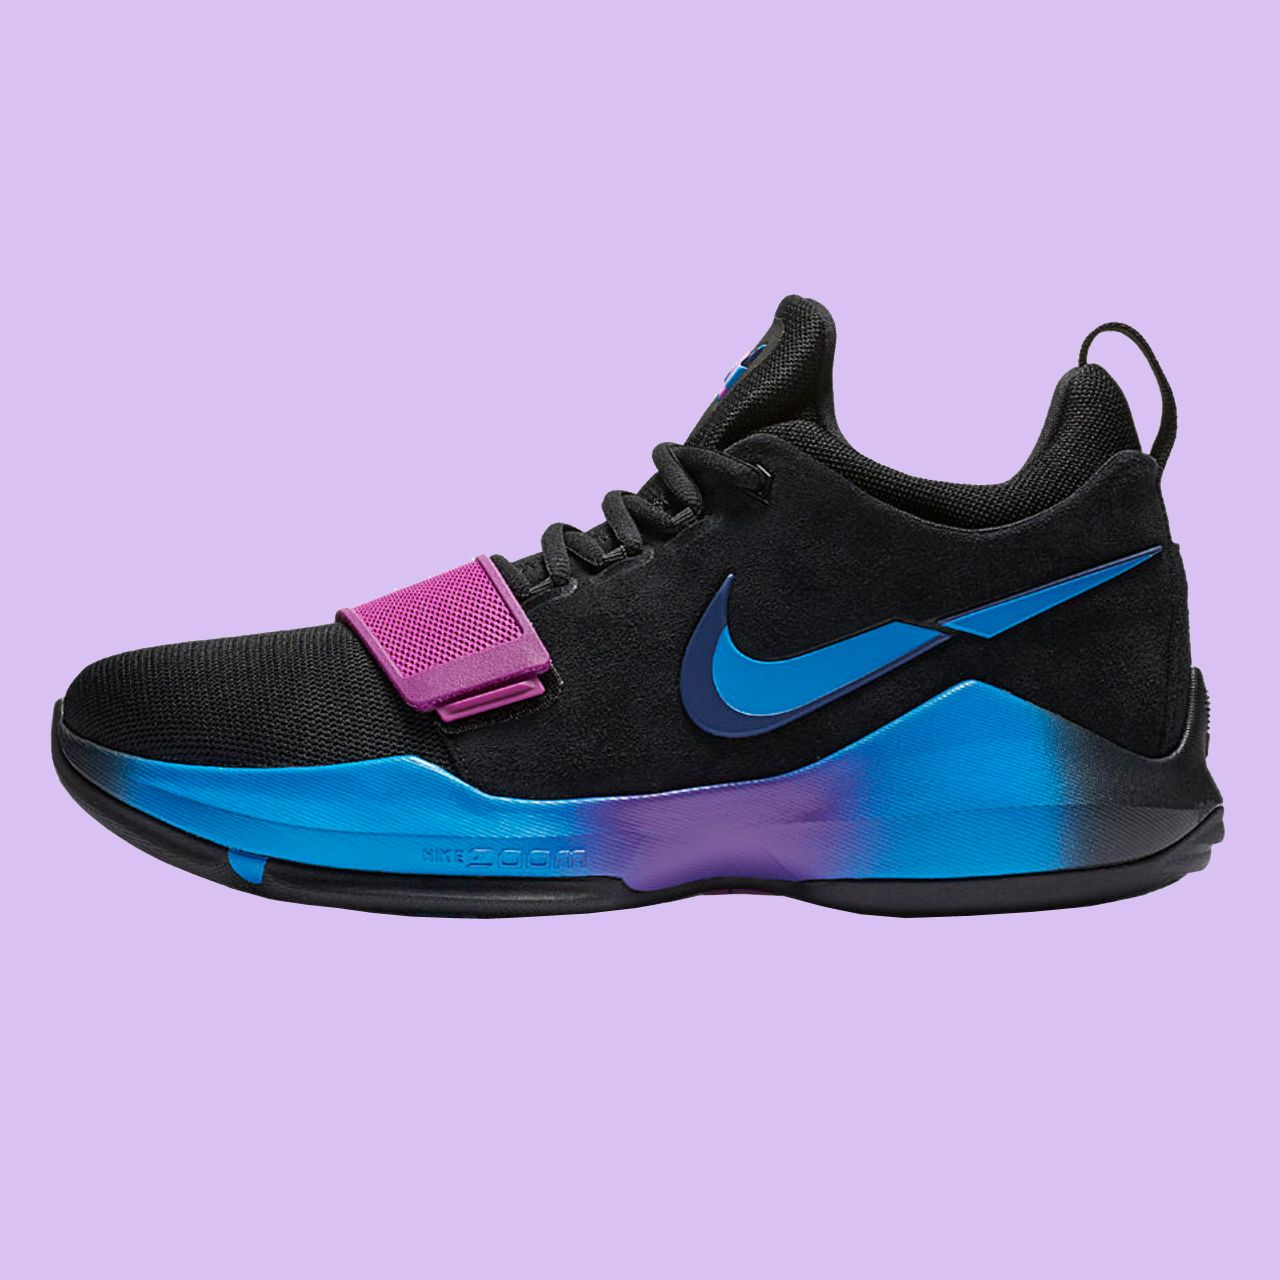 8bf67943b71b Sneakers  Nike  PG1  Black  Blue  Pink  Huge Price   110 USD.